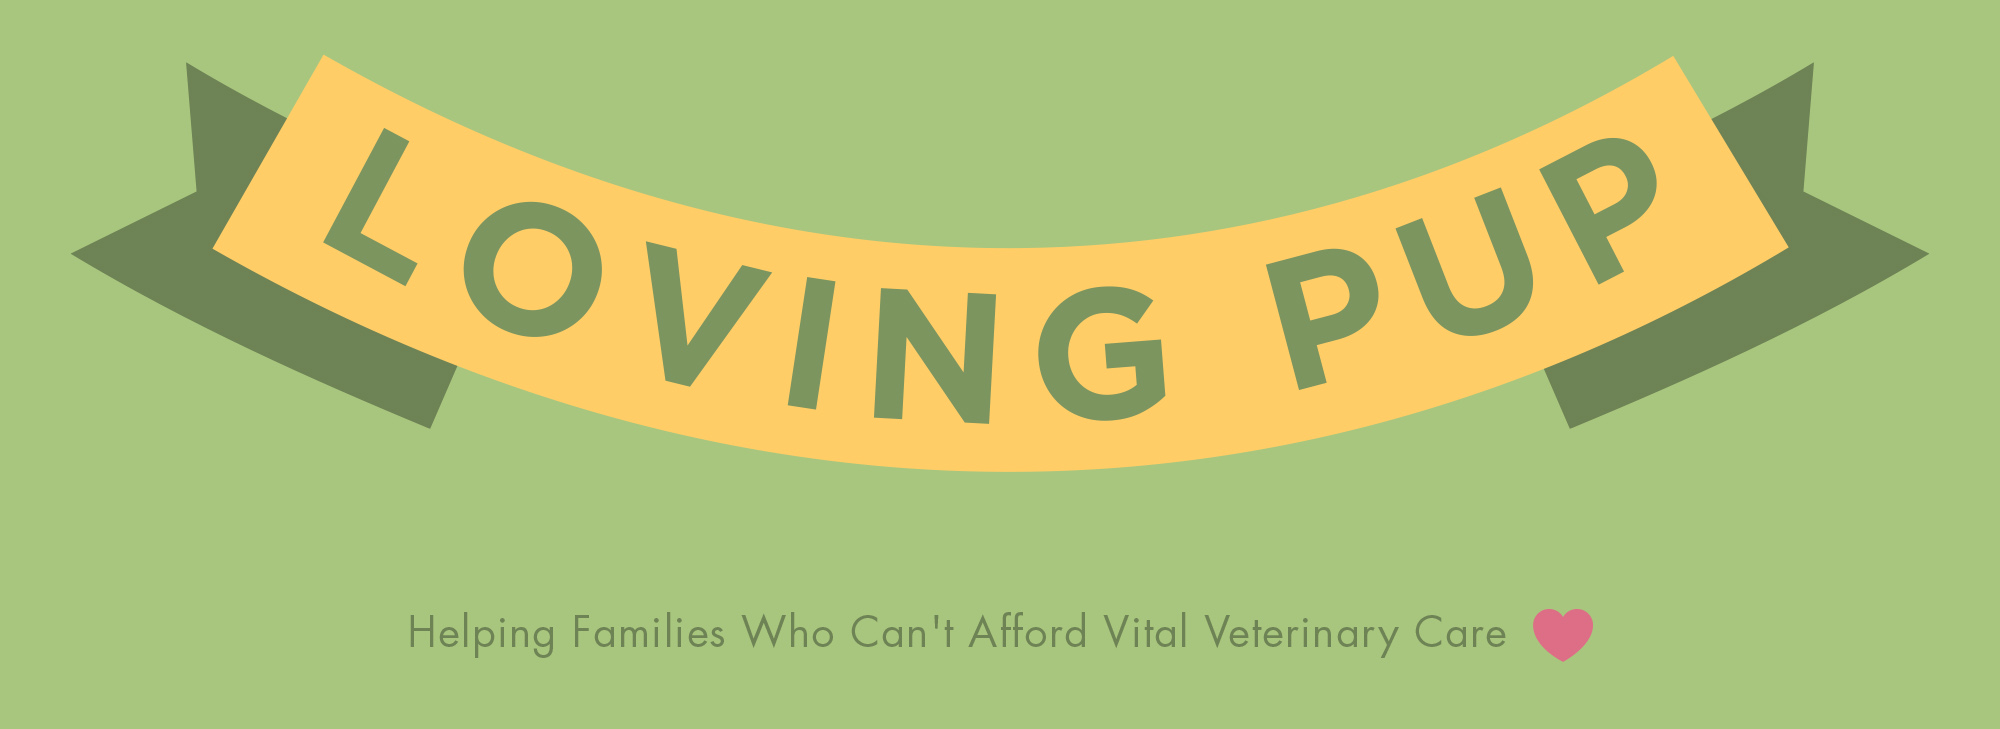 Loving Pup - Helping Families Who Can't Afford Vital Veterinary Care